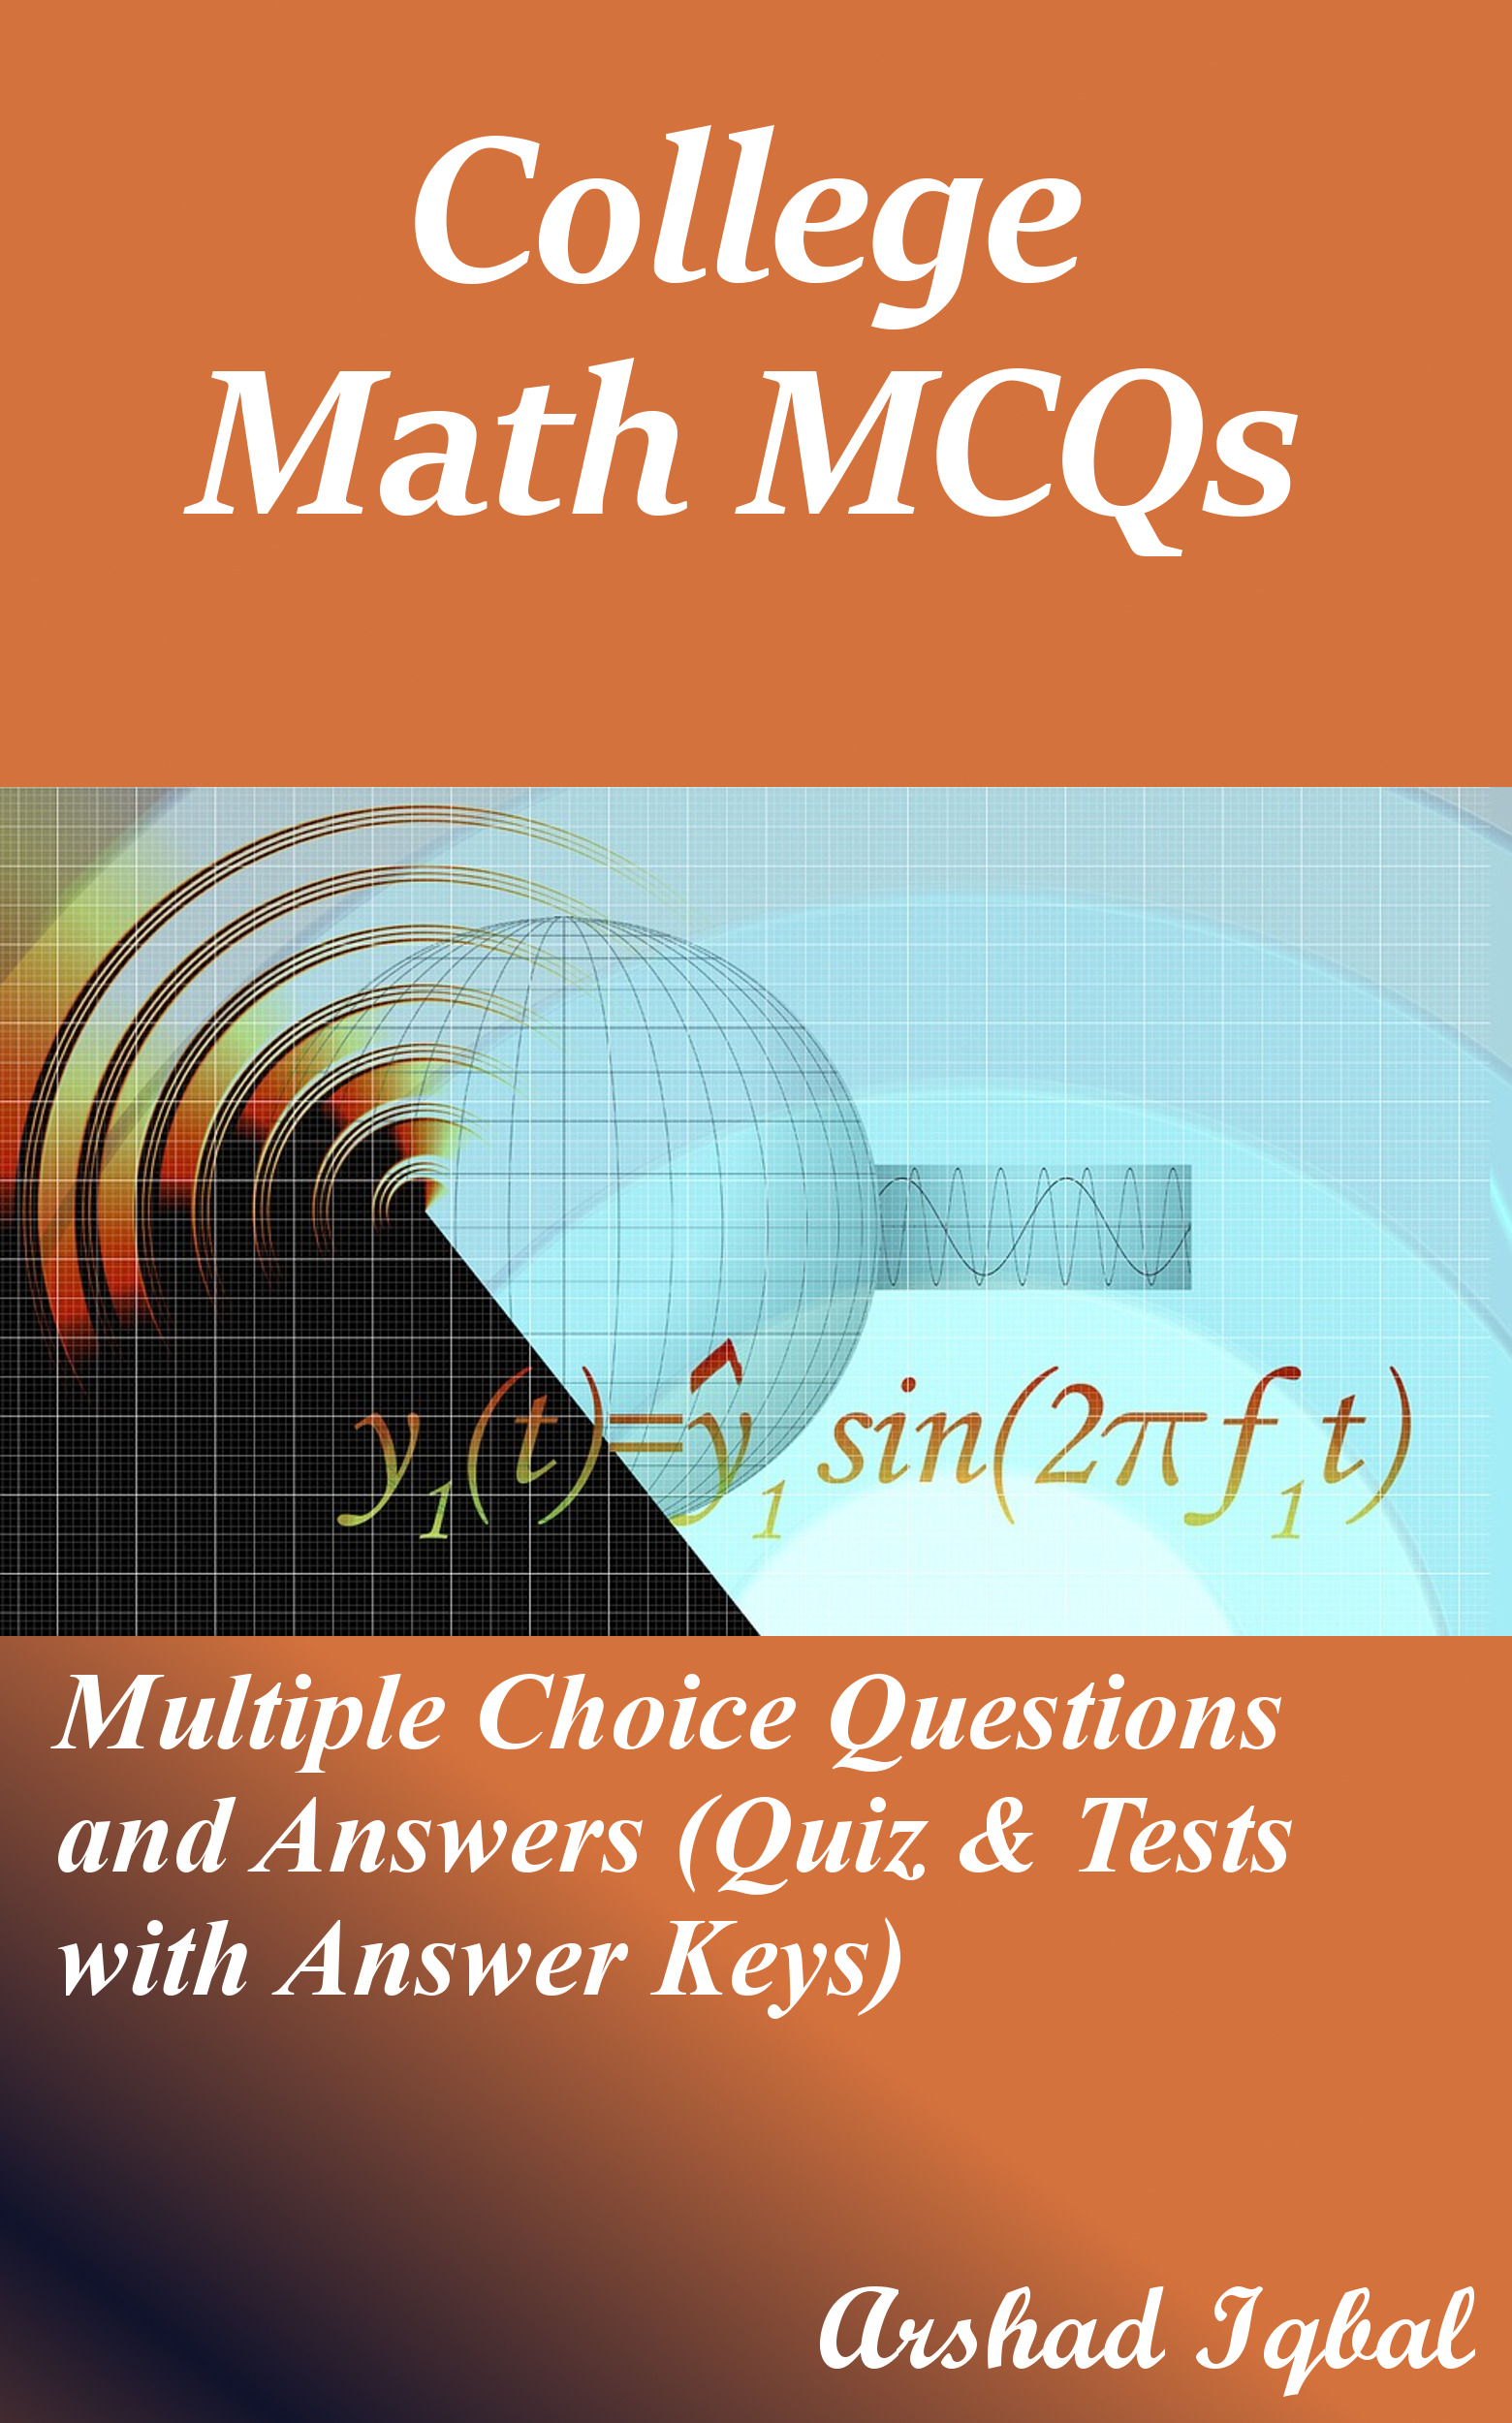 College Math MCQs: Multiple Choice Questions and Answers (Quiz & Tests with Answer Keys)